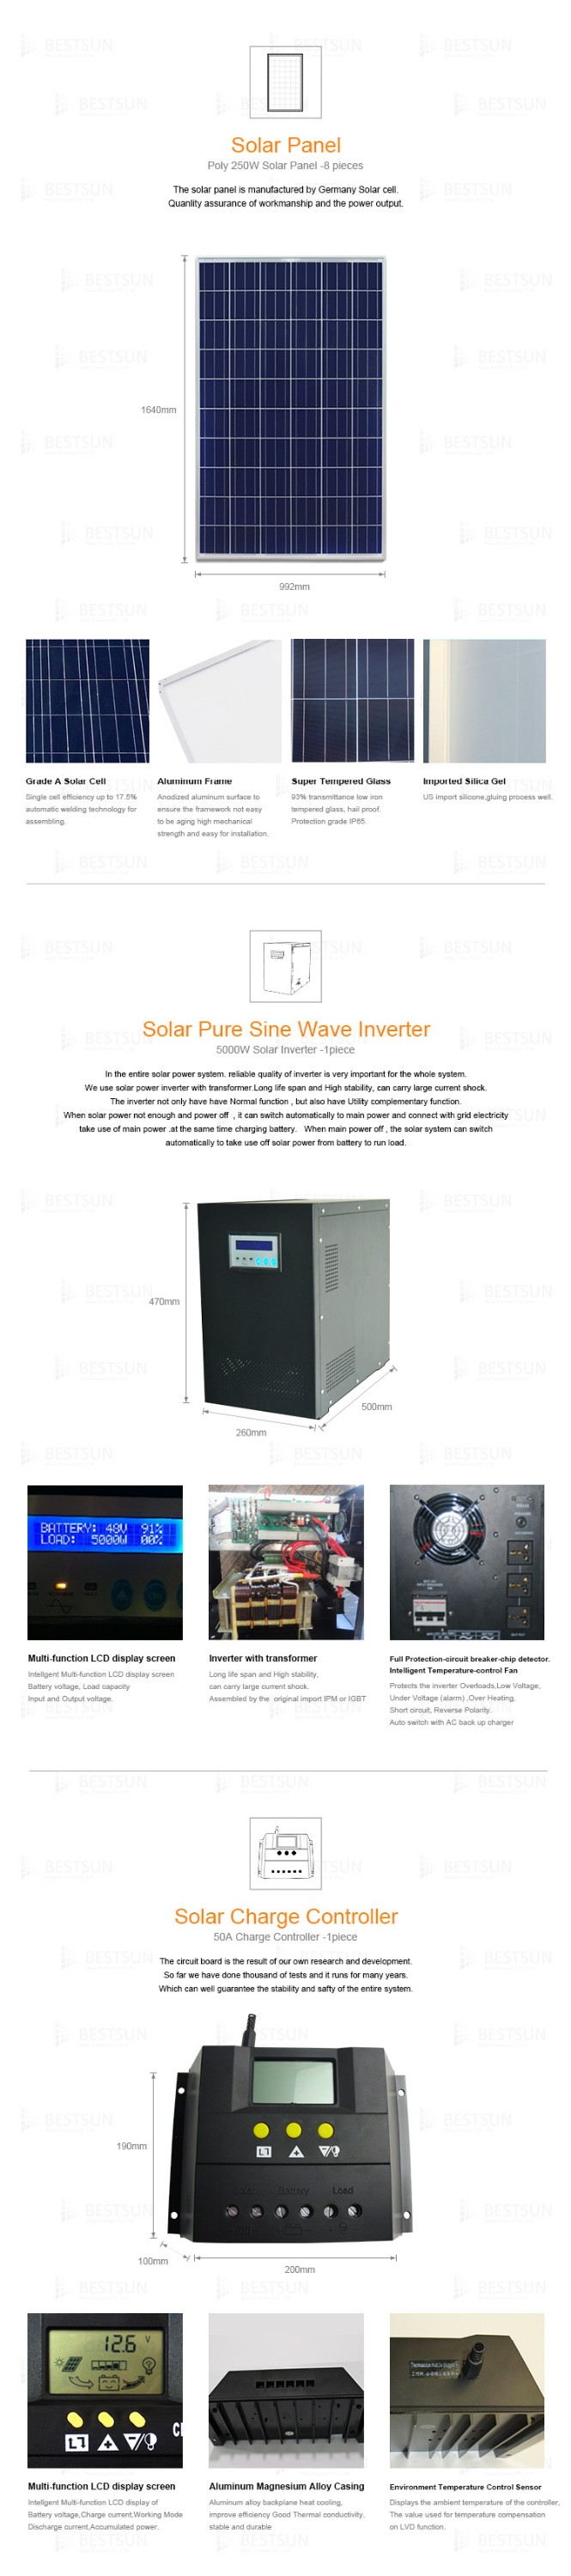 Found5kw solar power plant design ~ FIRST MEDIA